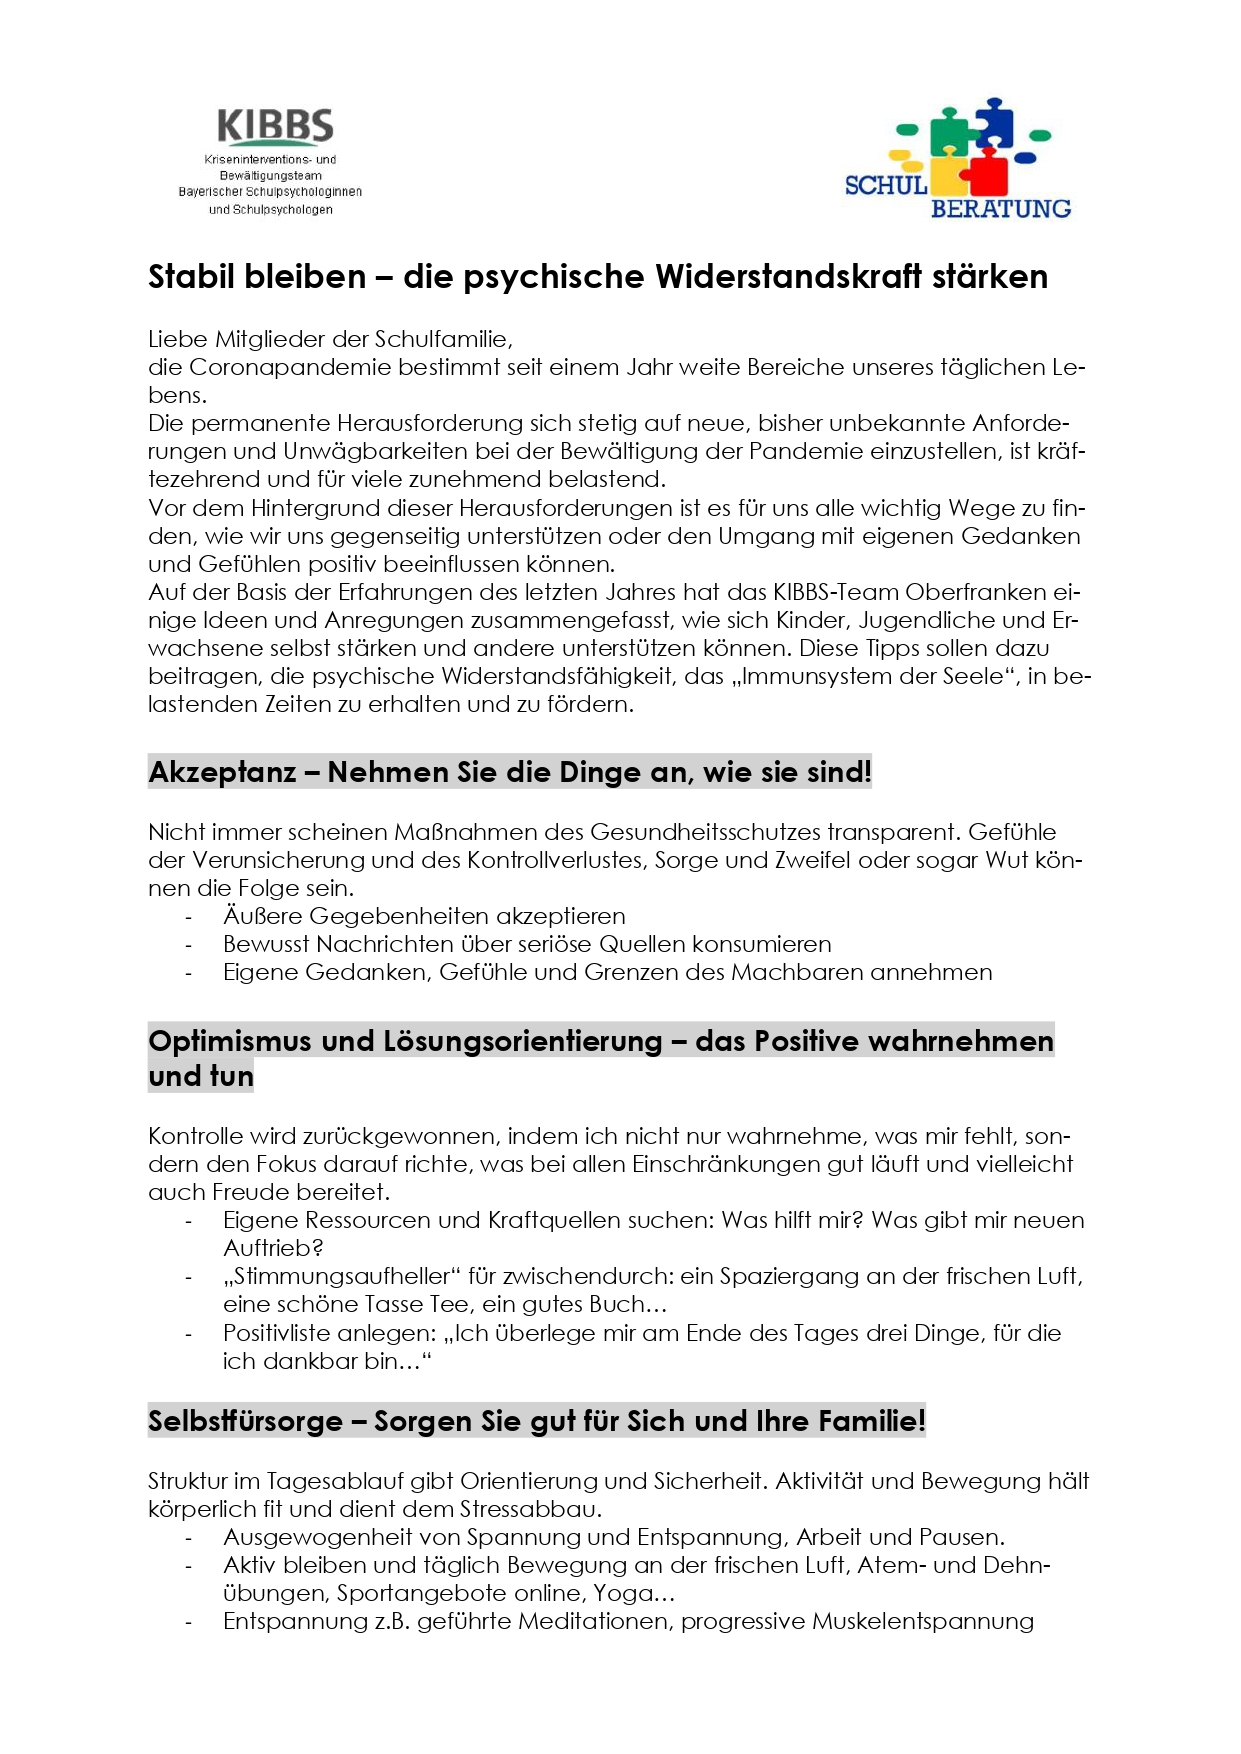 Schulberatung pages to jpg 0001